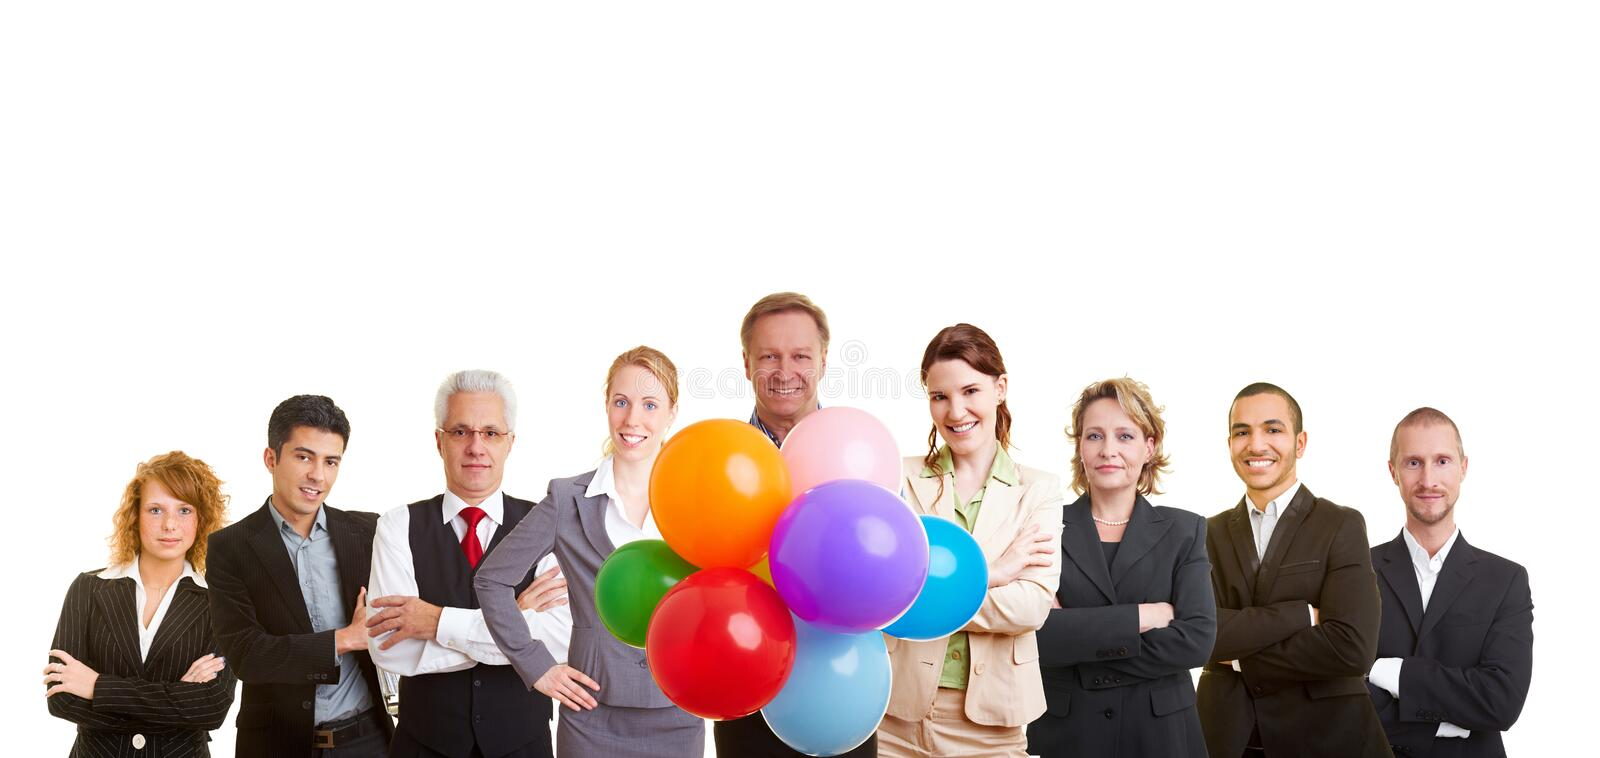 Group of business people. Celebrating with many balloons royalty free stock photography